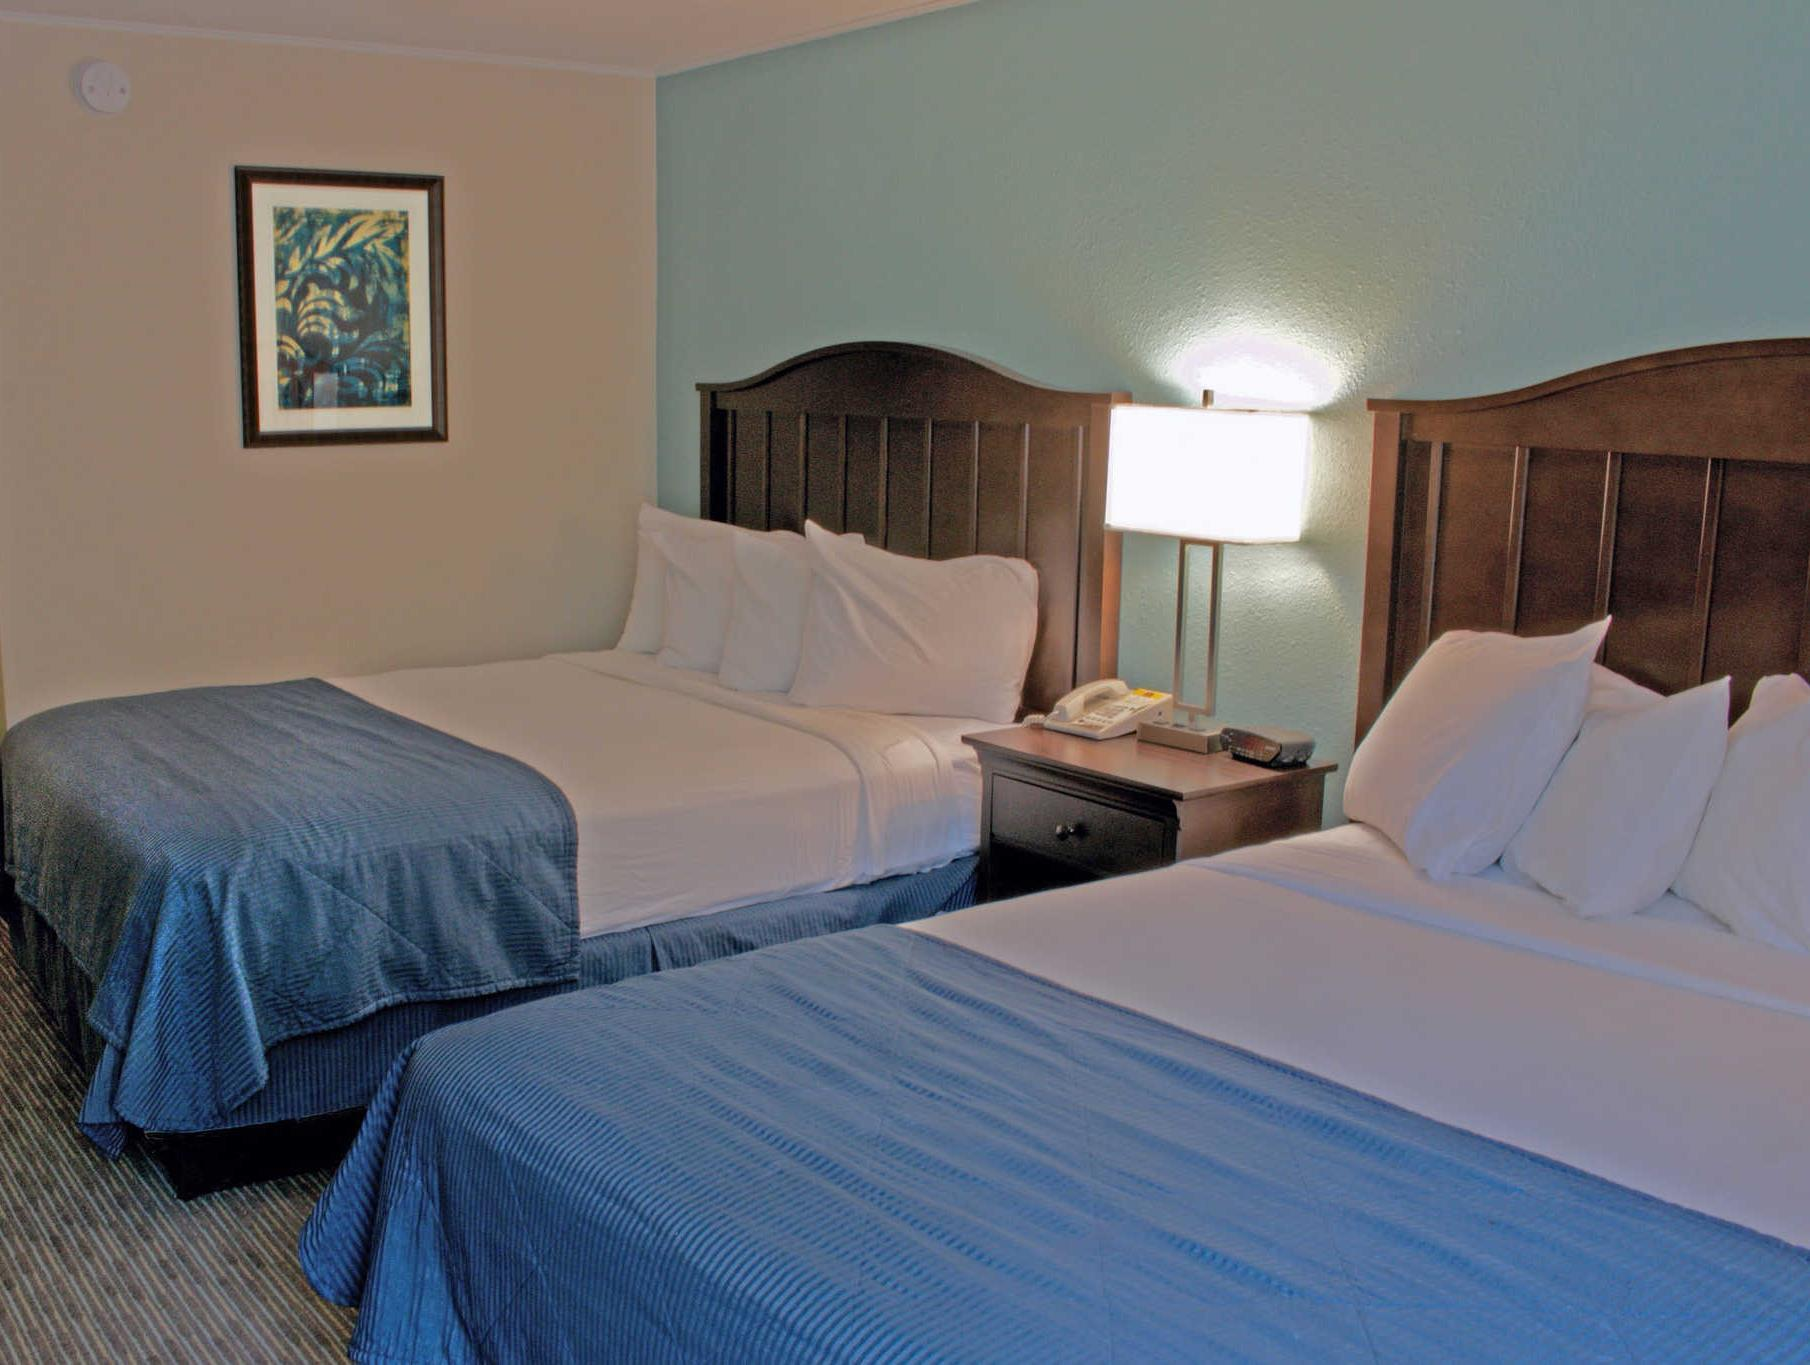 2 Double Bed Room